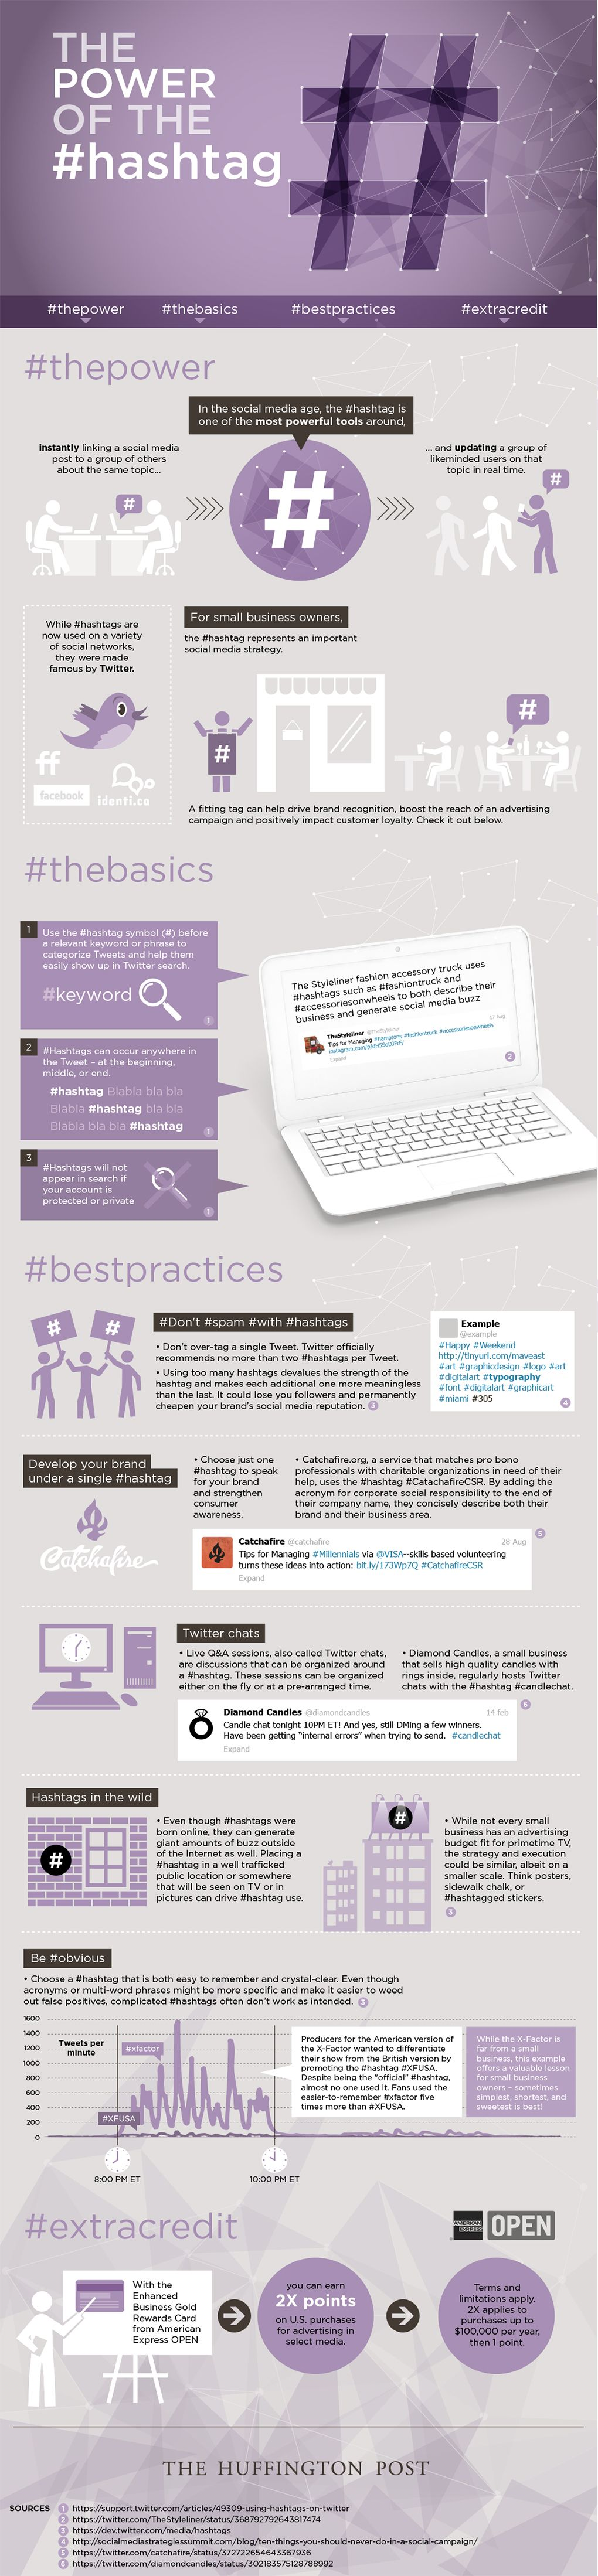 The Power Of The #Hashtag [INFOGRAPHIC] \u2013 AllTwitter | Infographic ...